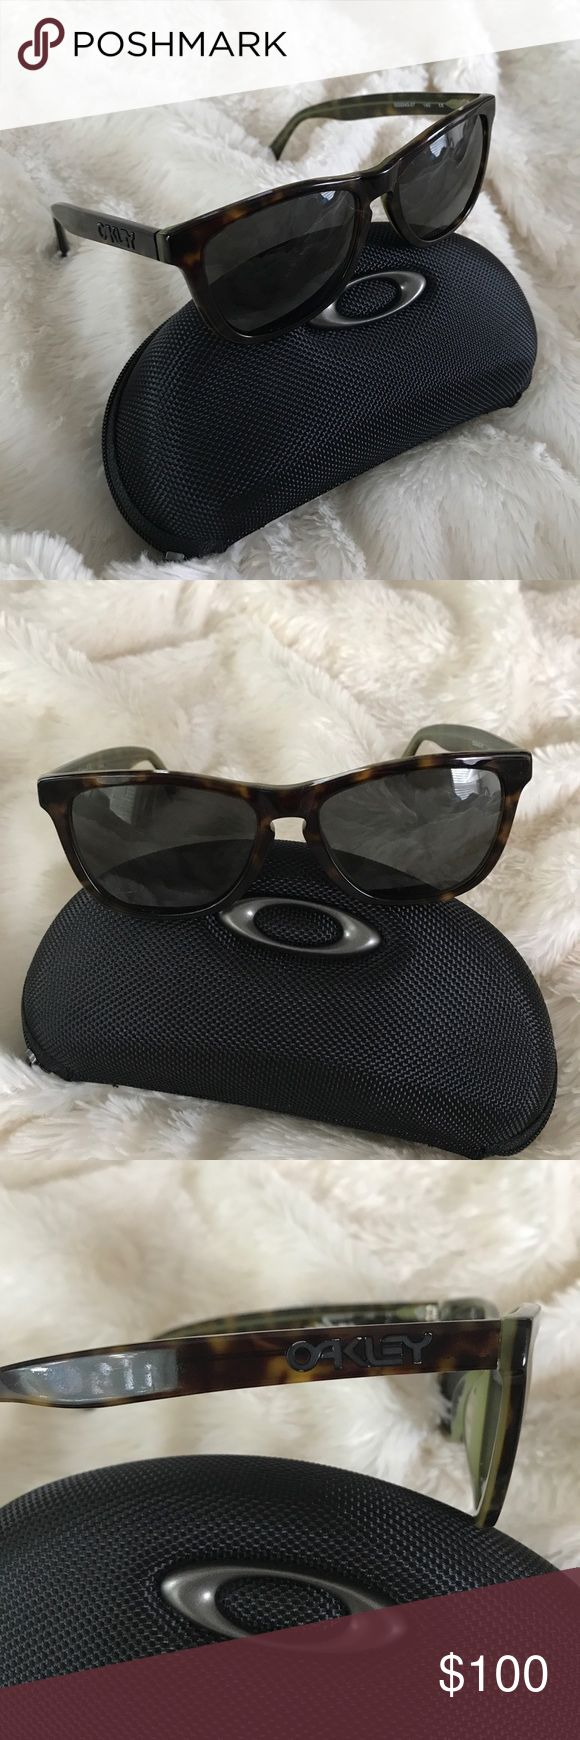 Women's Oakley Frogskins LX Authentic women's Oakleys Frogskin LX tortis brown. Perfect condition! No scratches! Comes with hard carrying case 😎 offers welcome! Oakley Accessories Sunglasses